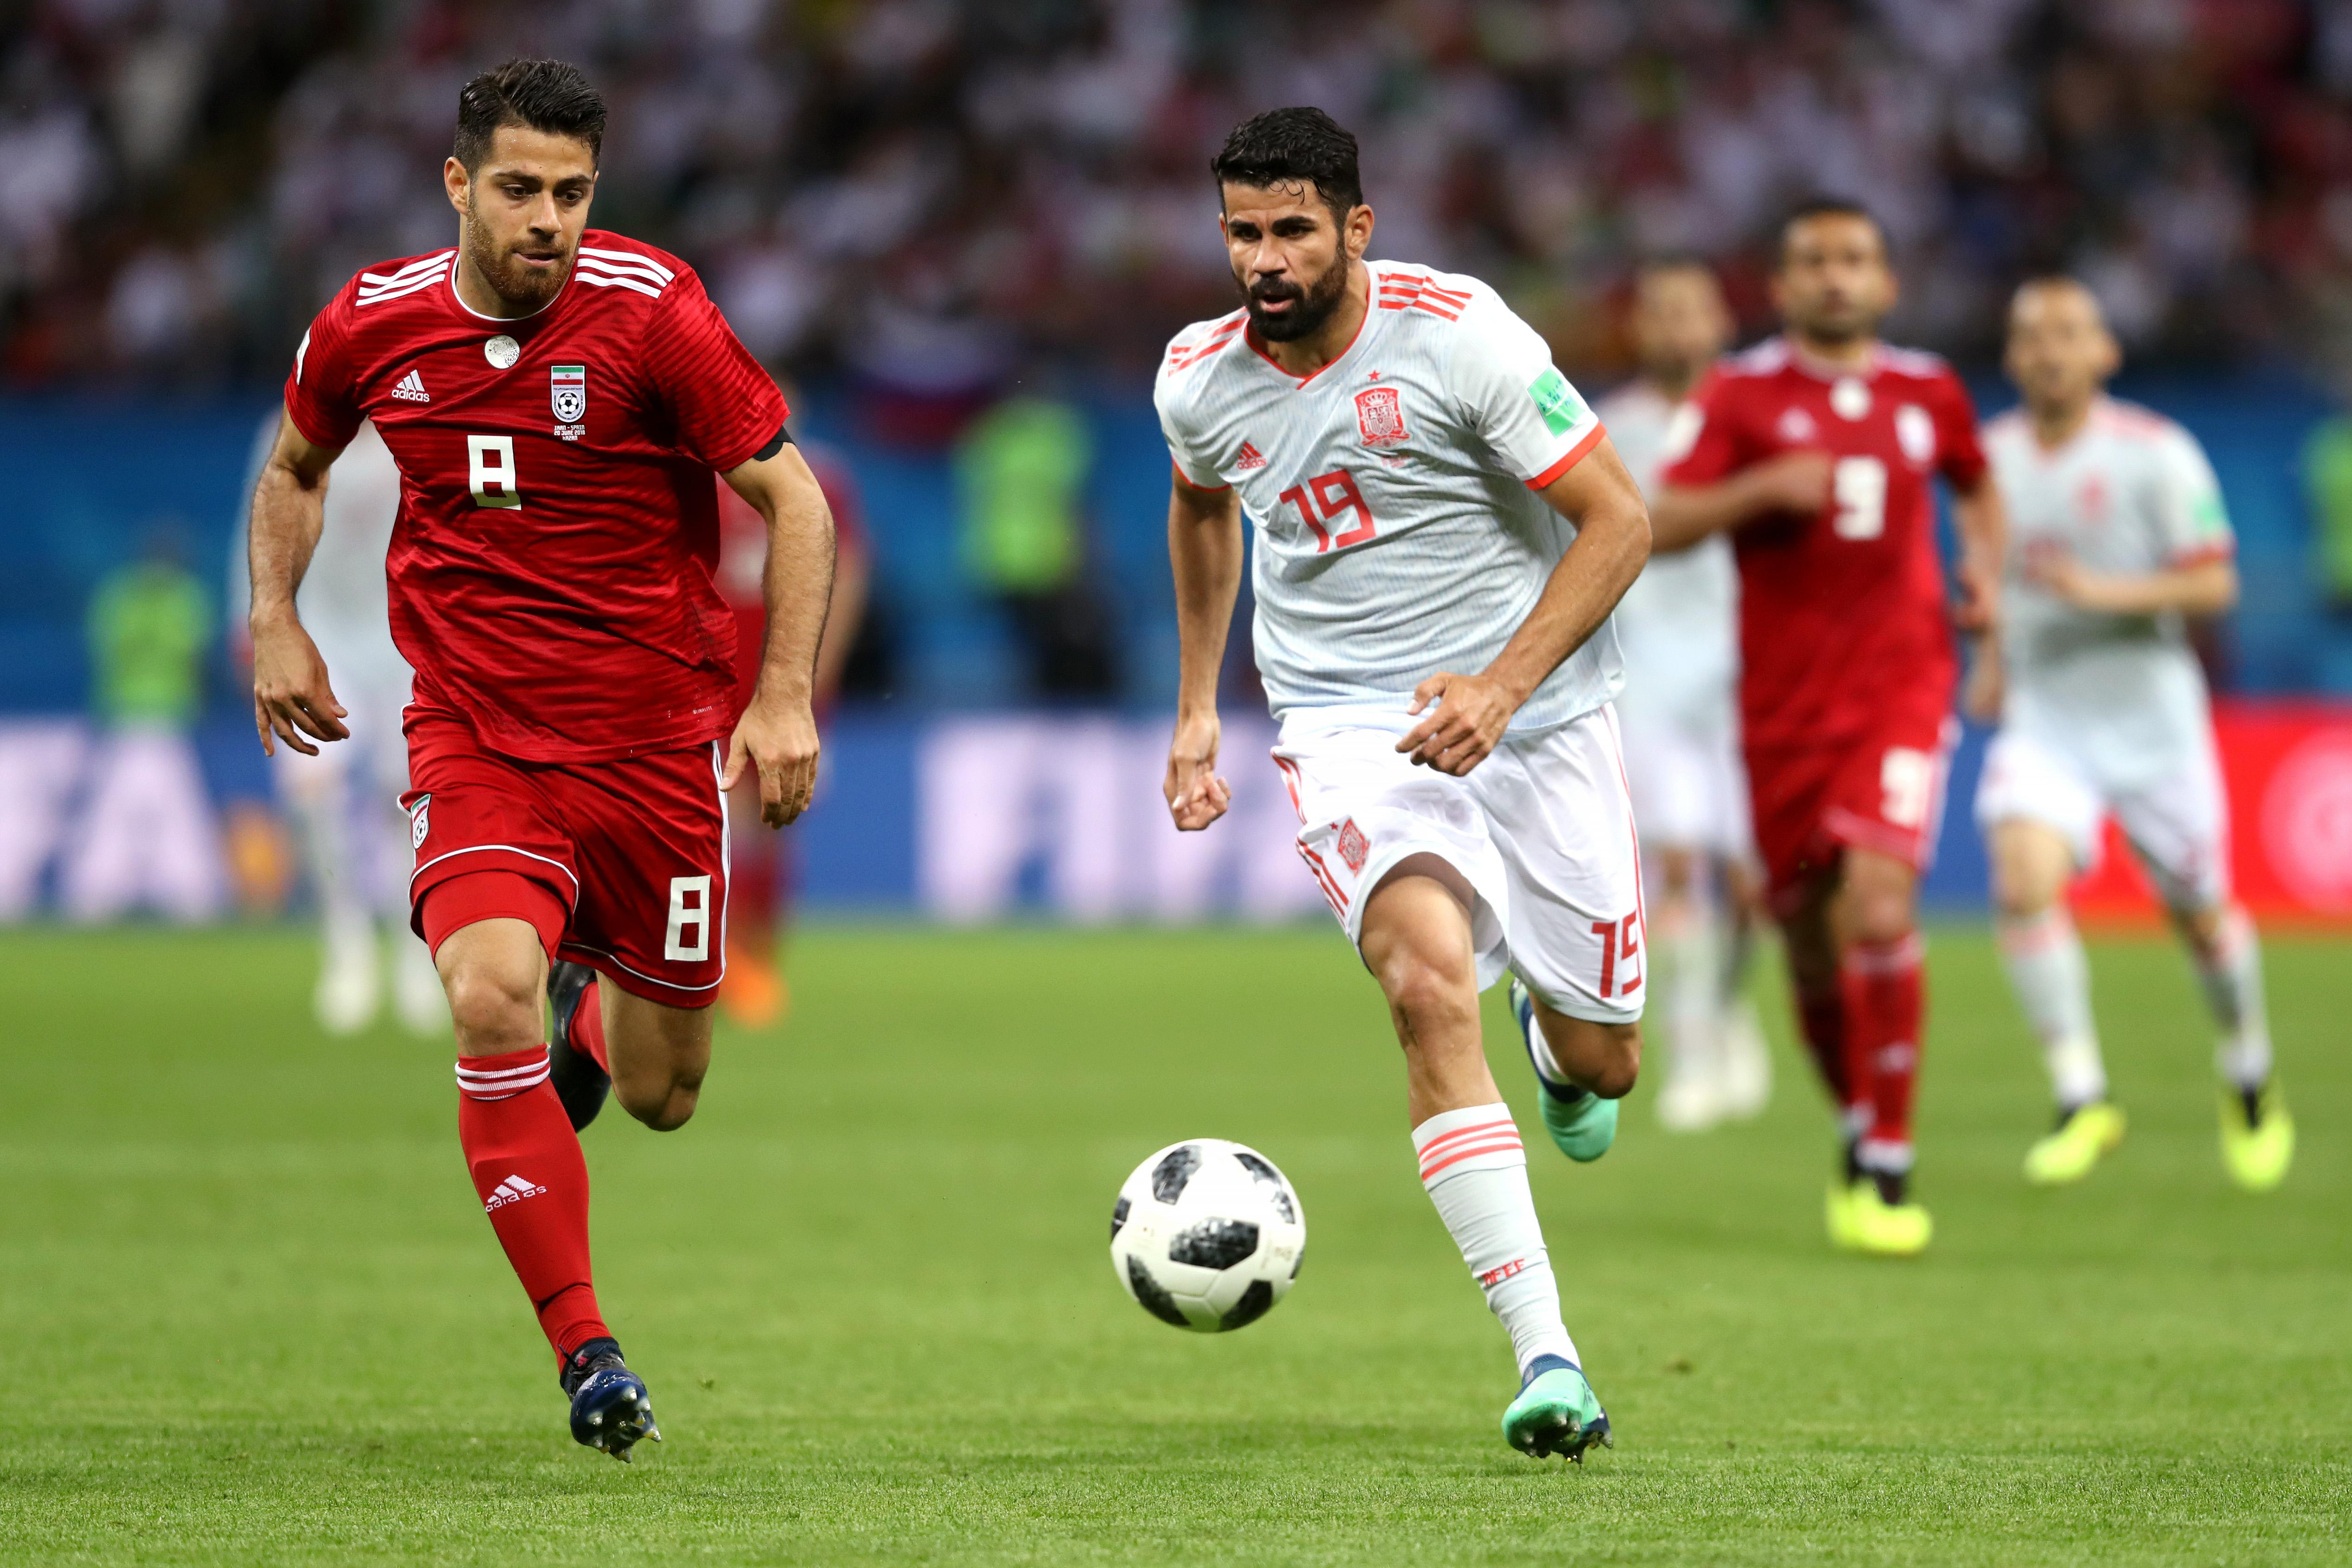 Morteza Pouraliganji is currently a free agent and could join for nothing